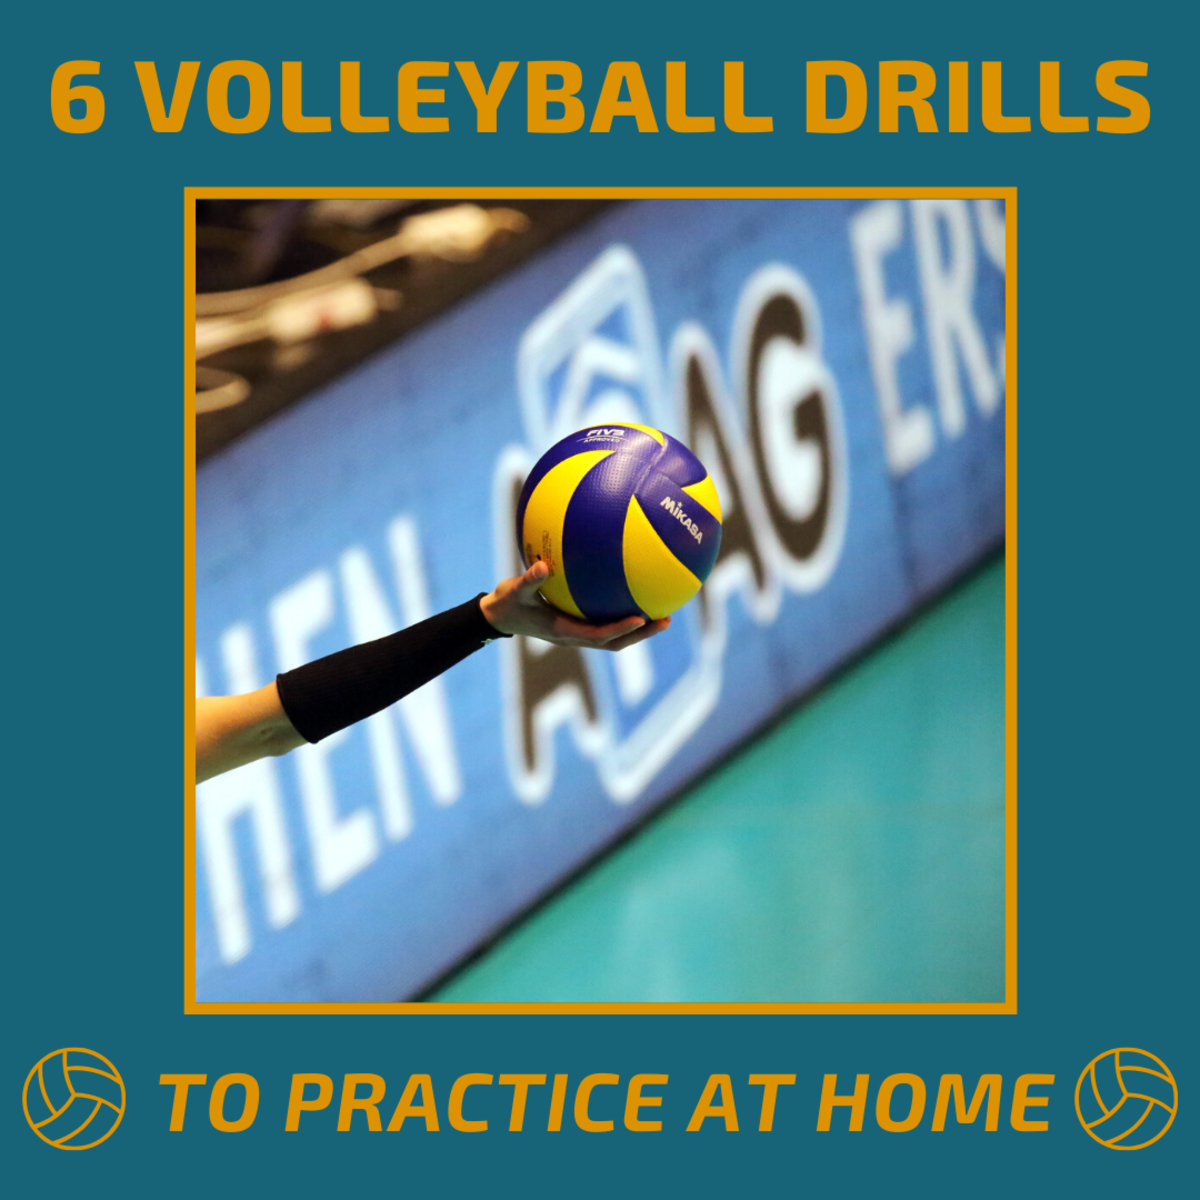 No net? No court? No problem! These six at-home drills can help you get you ready for your next match.